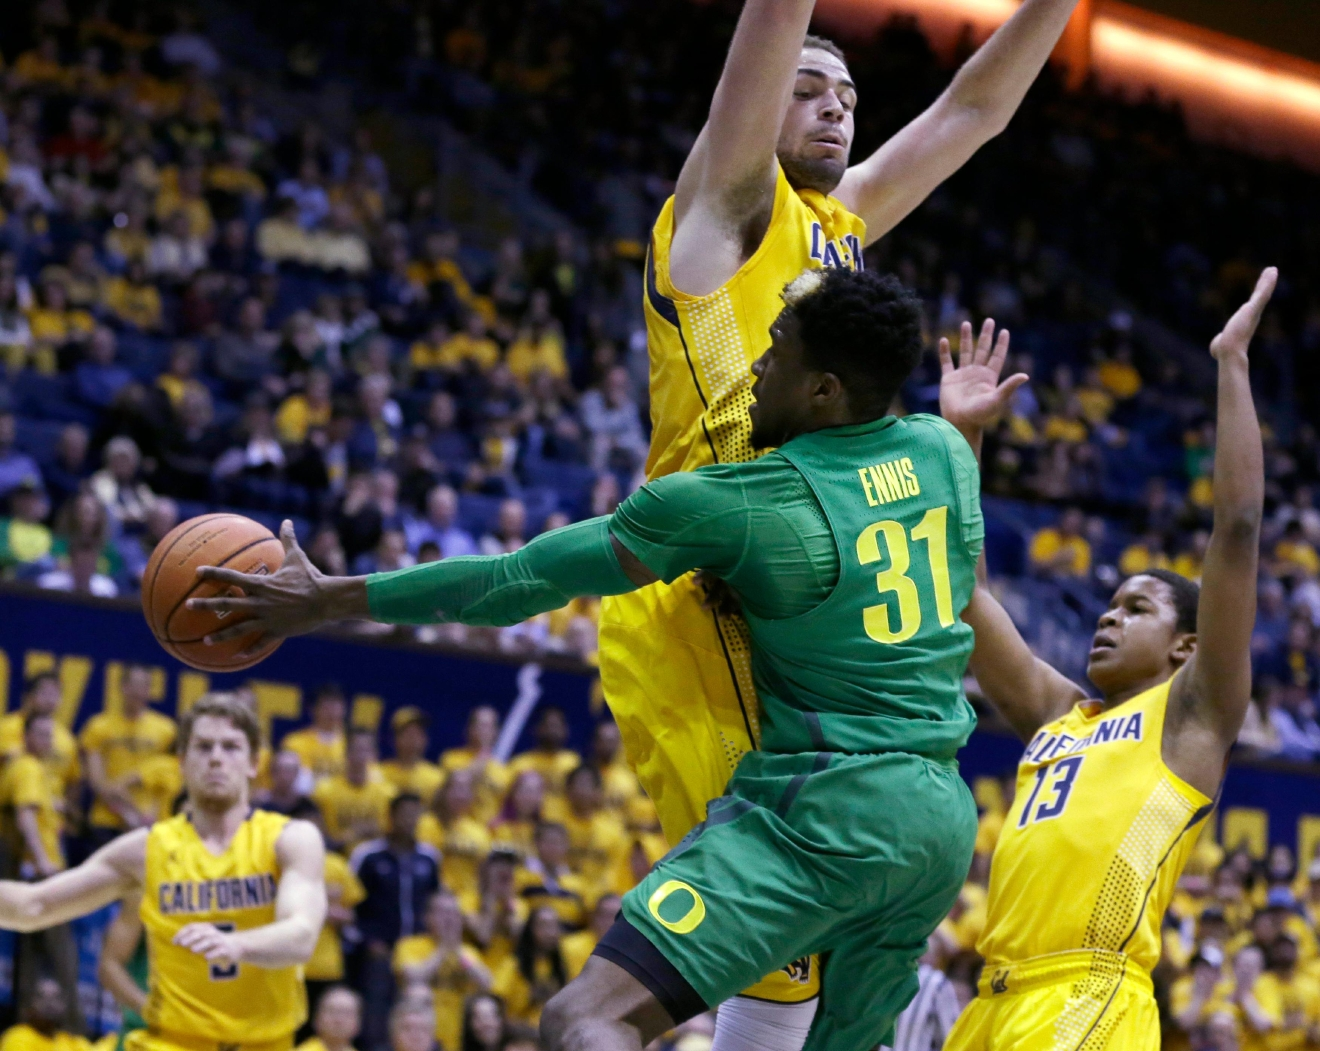 Oregon's Dylan Ennis (31) passes away from California's Kameron Rooks and Charlie Moore (13) in the first half of an NCAA college basketball game, Wednesday, Feb. 22, 2017, in Berkeley, Calif. (AP Photo/Ben Margot)